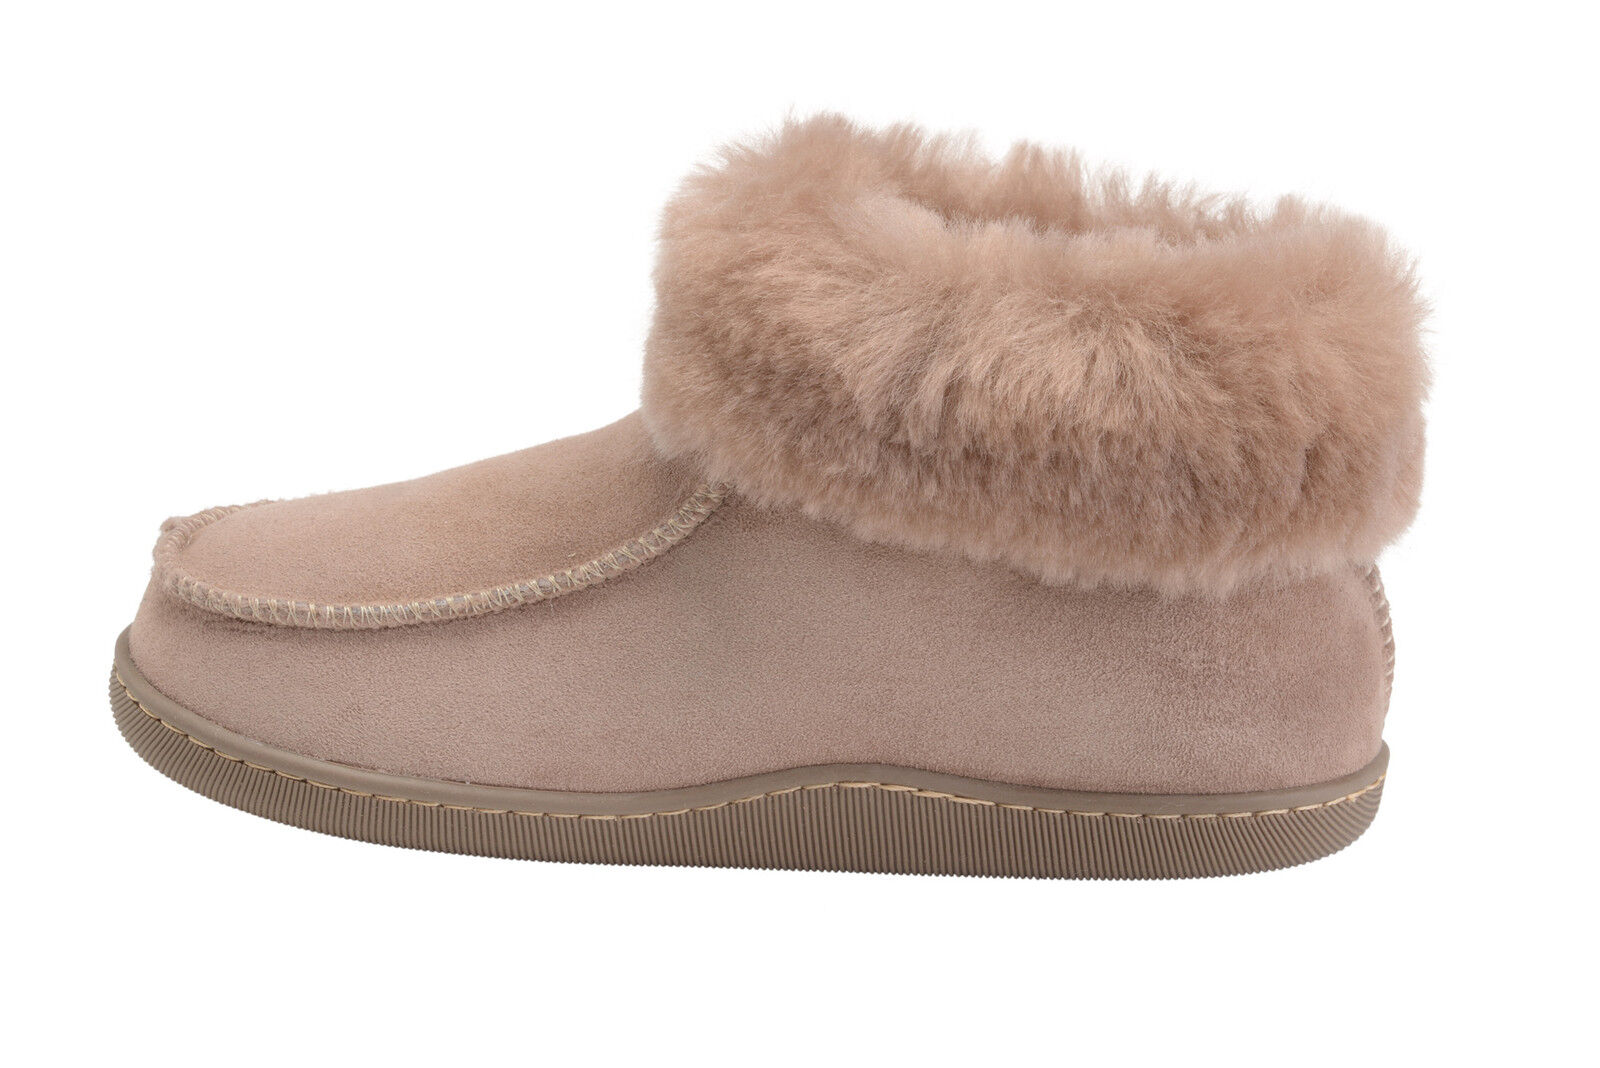 New Mens Womens Genuine Sheepskin Booties House Slippers shoes with Wool Lining